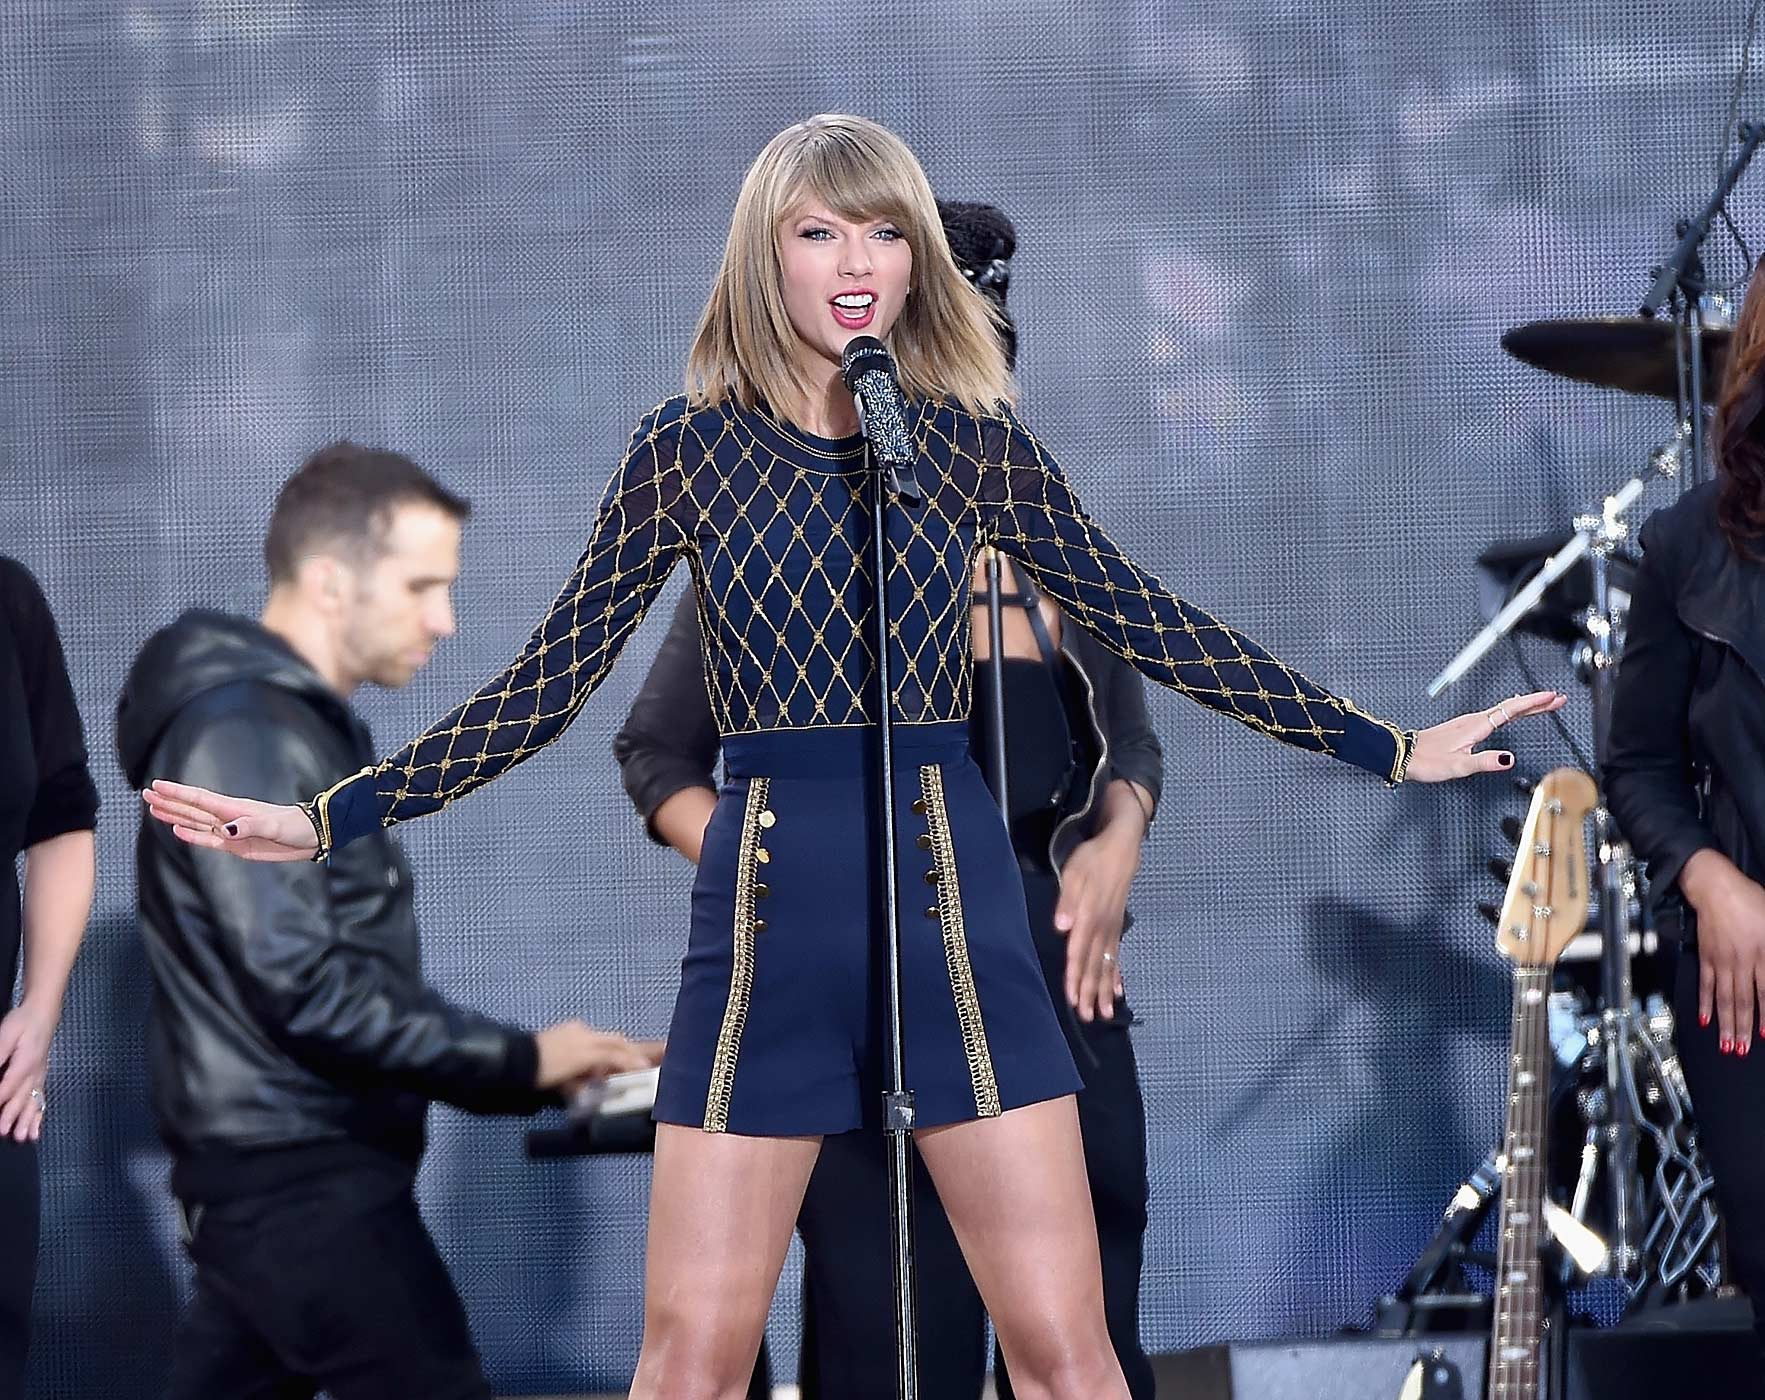 Taylor Swift Performs On ABC's  Good Morning America  at Times Square on October 30, 2014 in New York City.